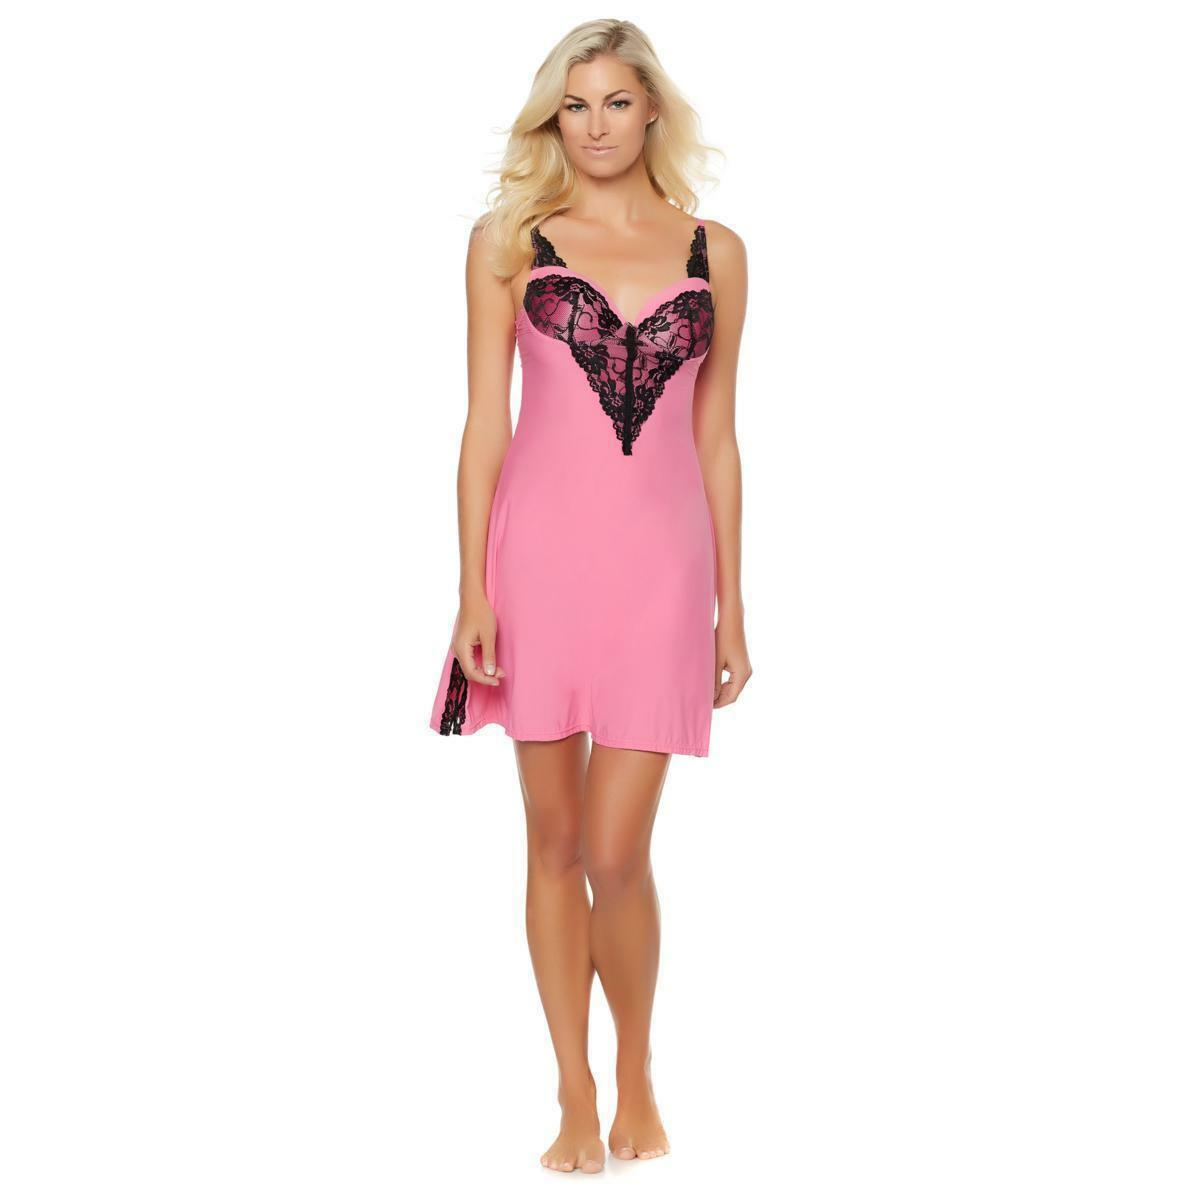 Rhonda Shear Molded Cup Solid Chemise with Lace Detail (HSN 561462) image 5